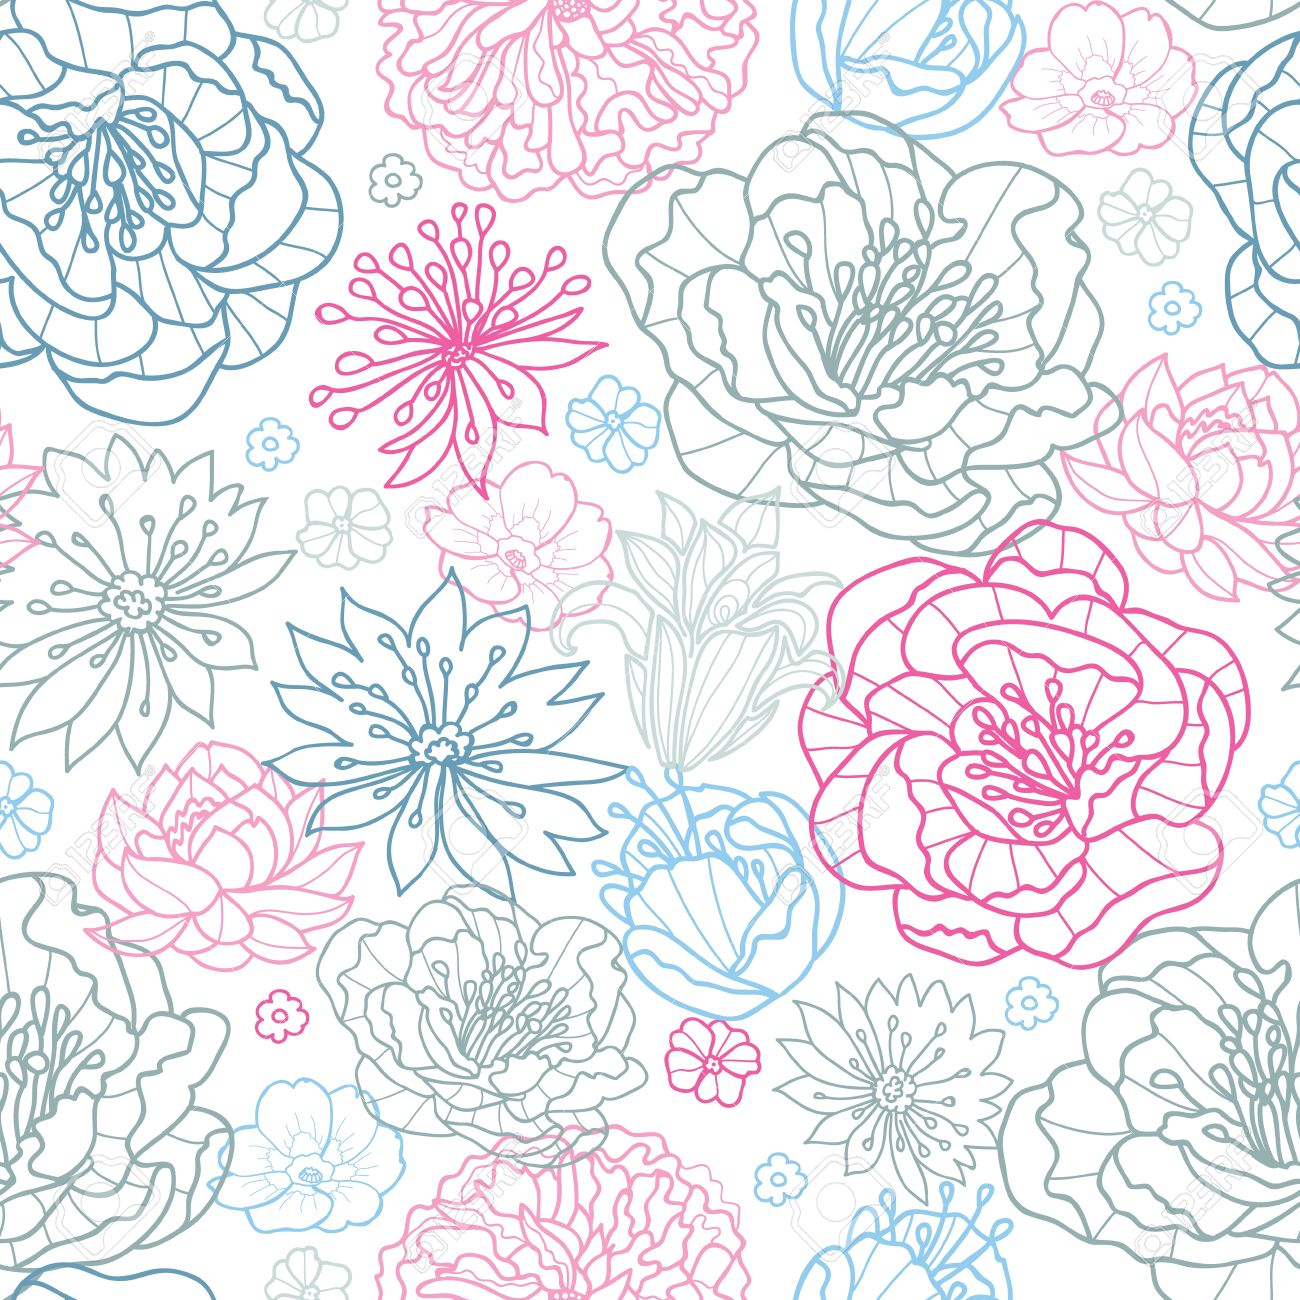 Gray and pink lineart florals seamless pattern background - 20342031